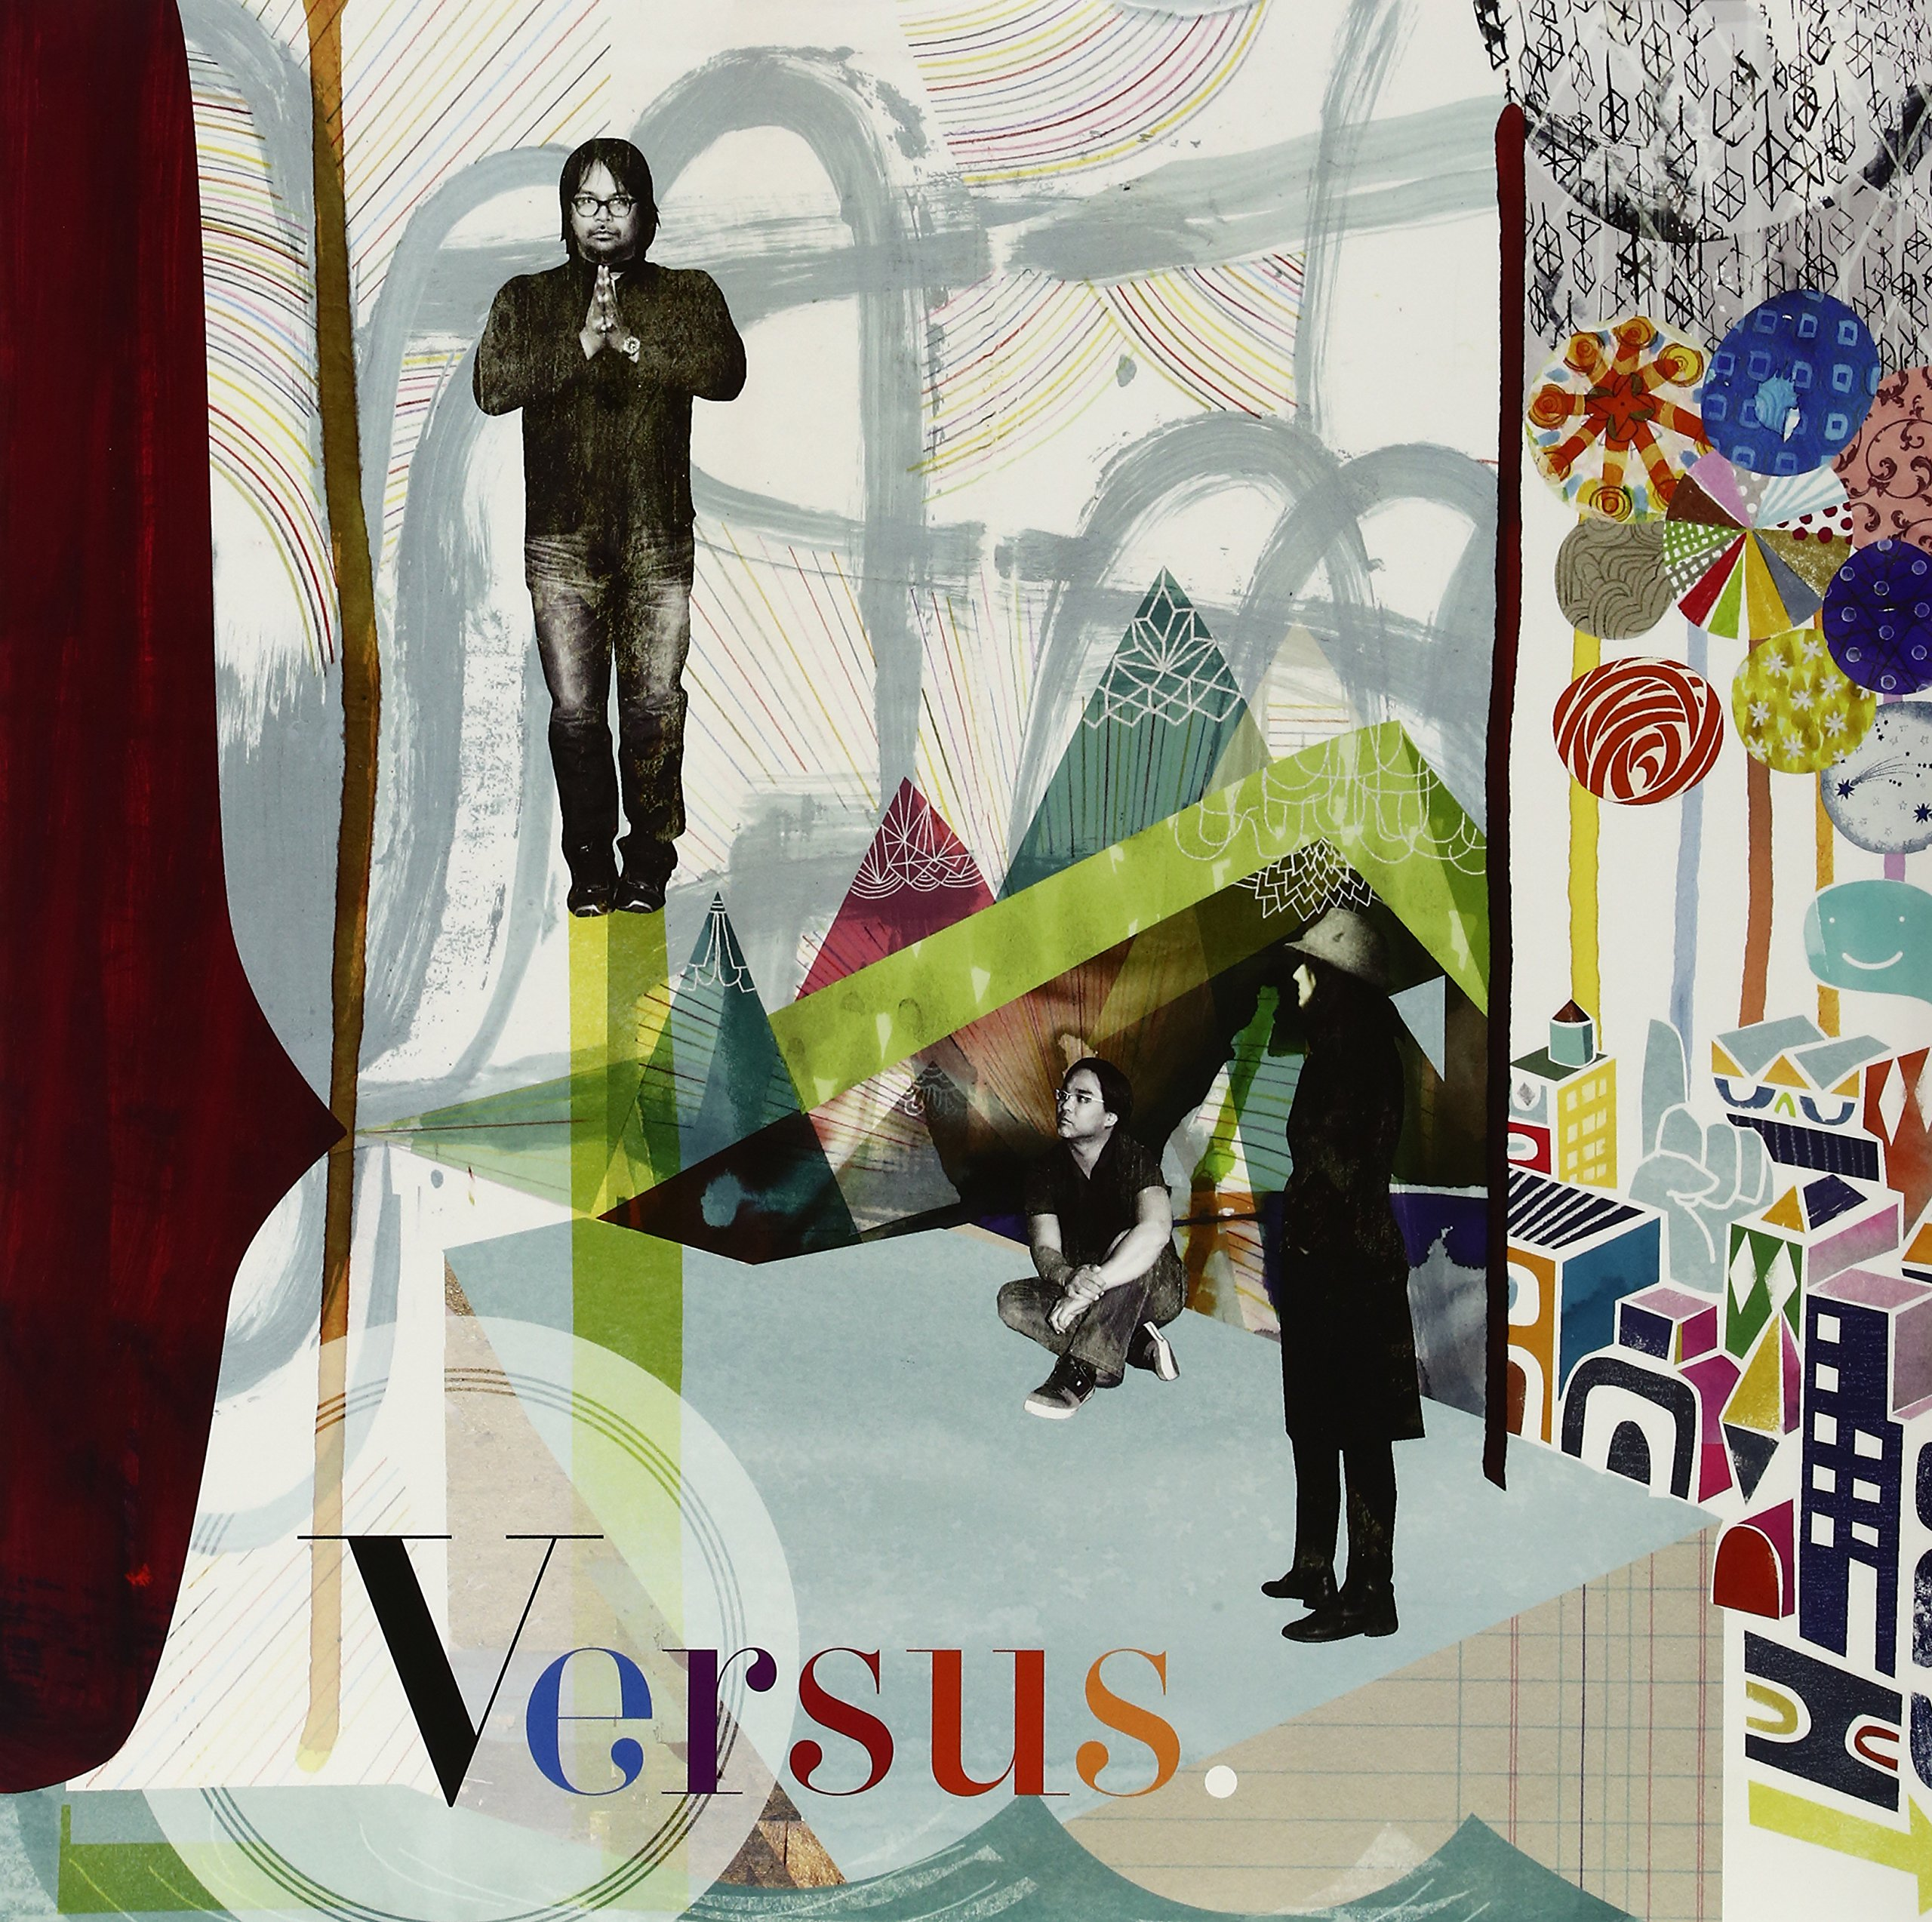 Vinilo : Versus - On The Ones And Threes (Limited Edition, Digital Download Card)